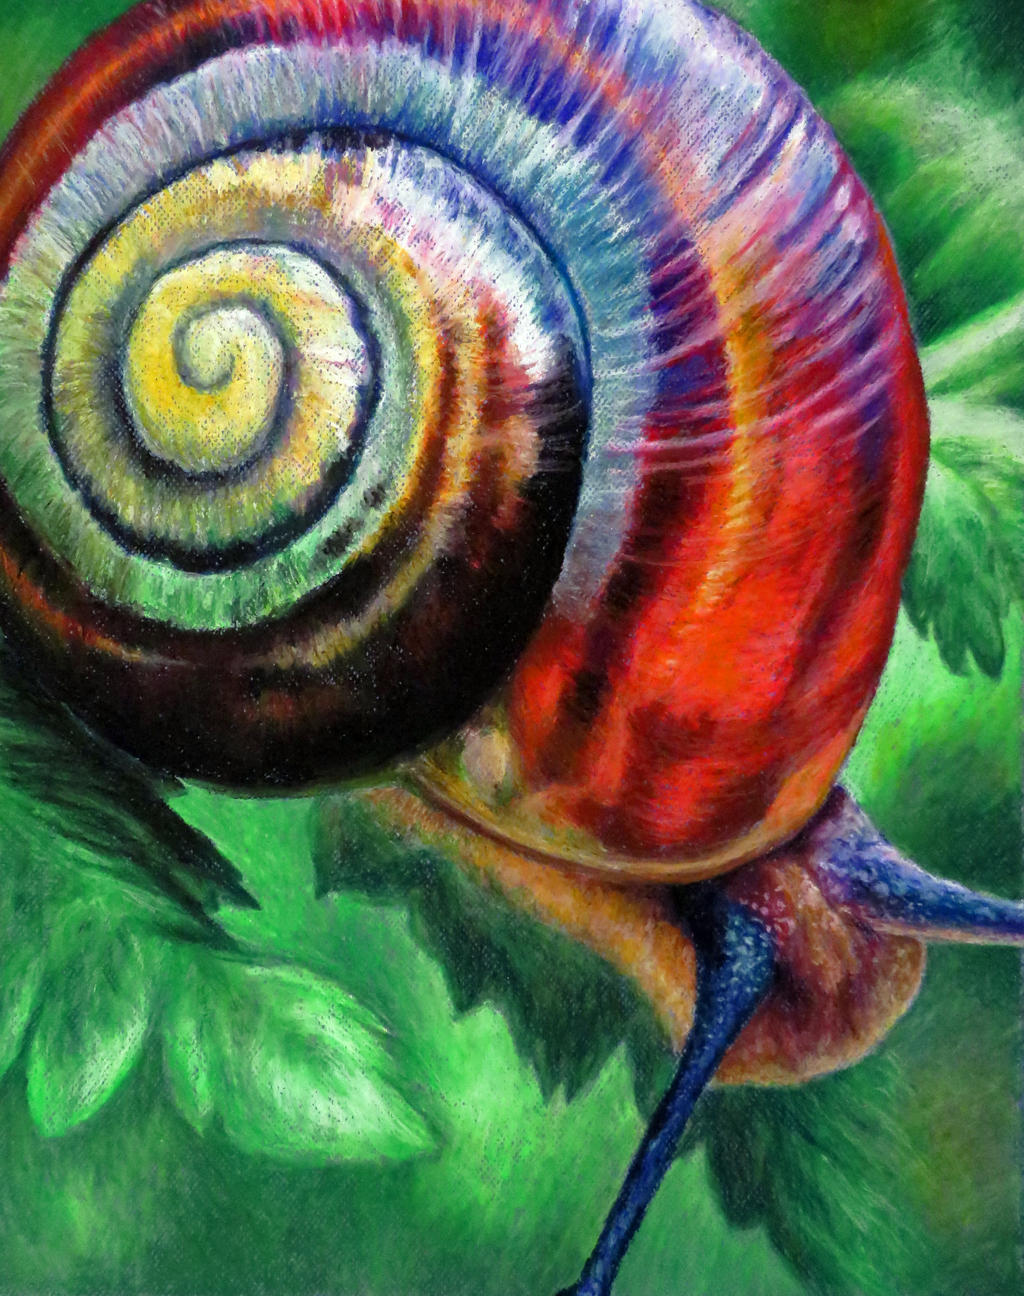 Oil Painting Of Snail